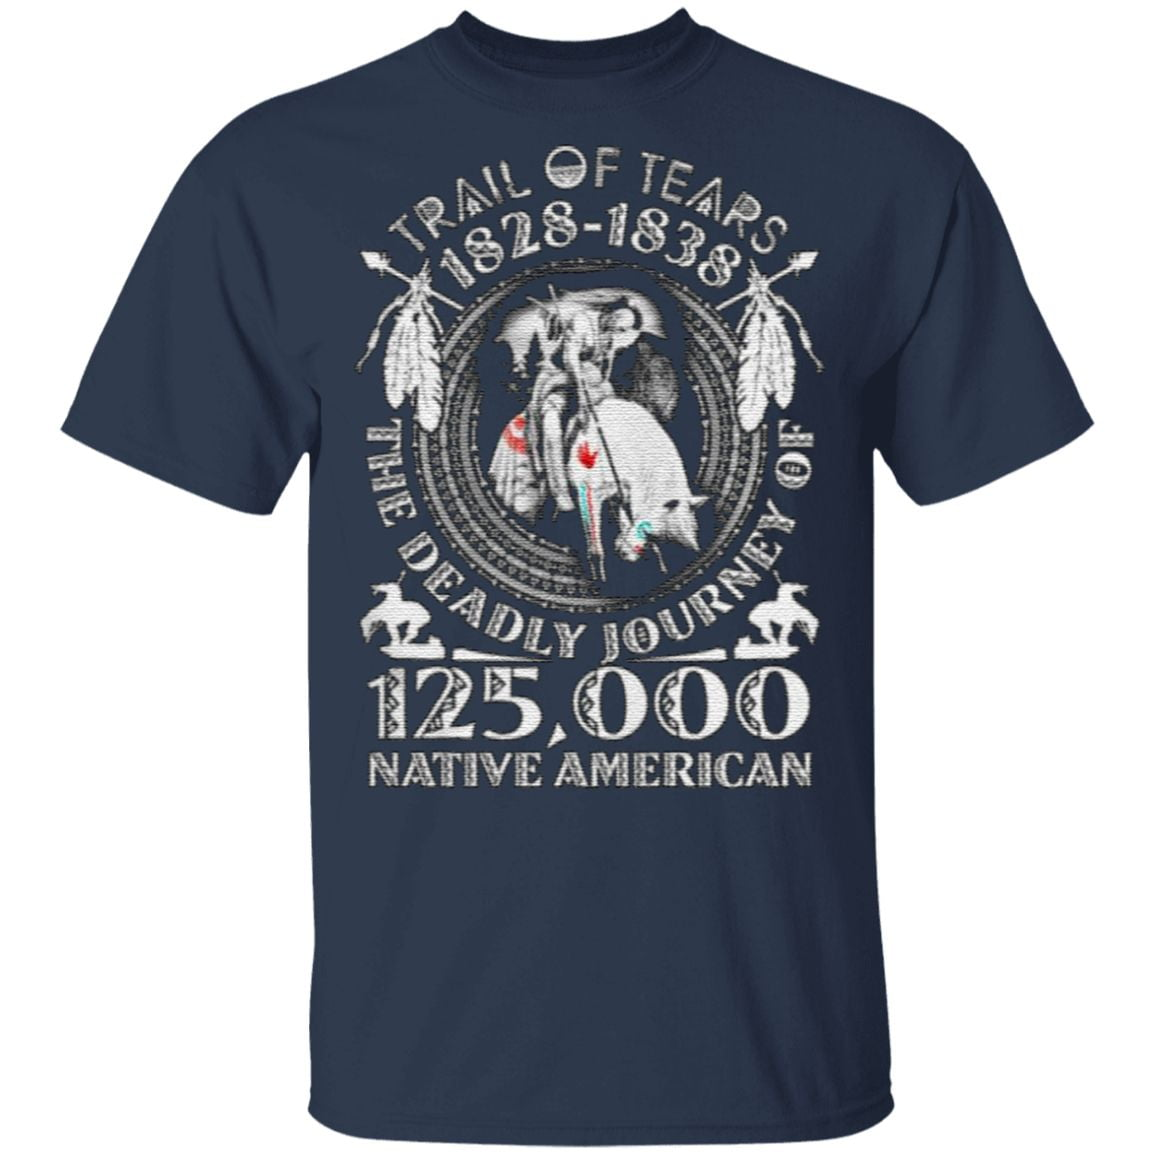 Trail Of Tears 1828-1838 The Deadly Journey Of 125000 Native American T Shirt